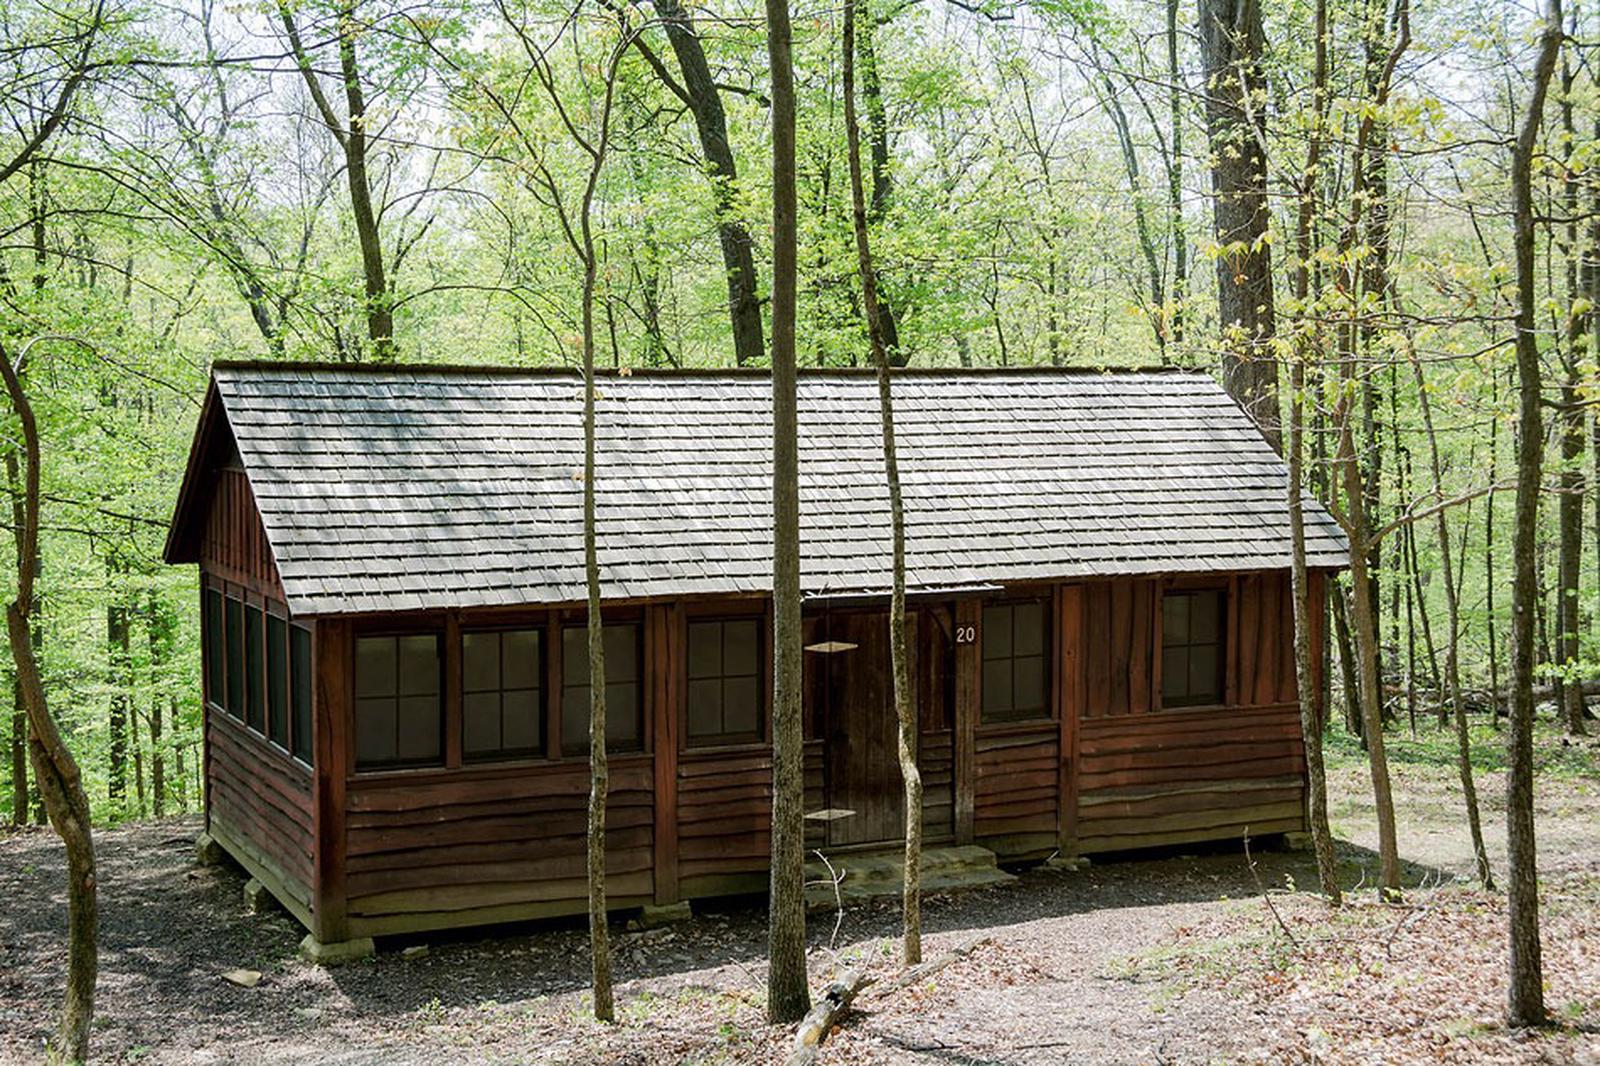 Camp Misty Mount Cabin 20